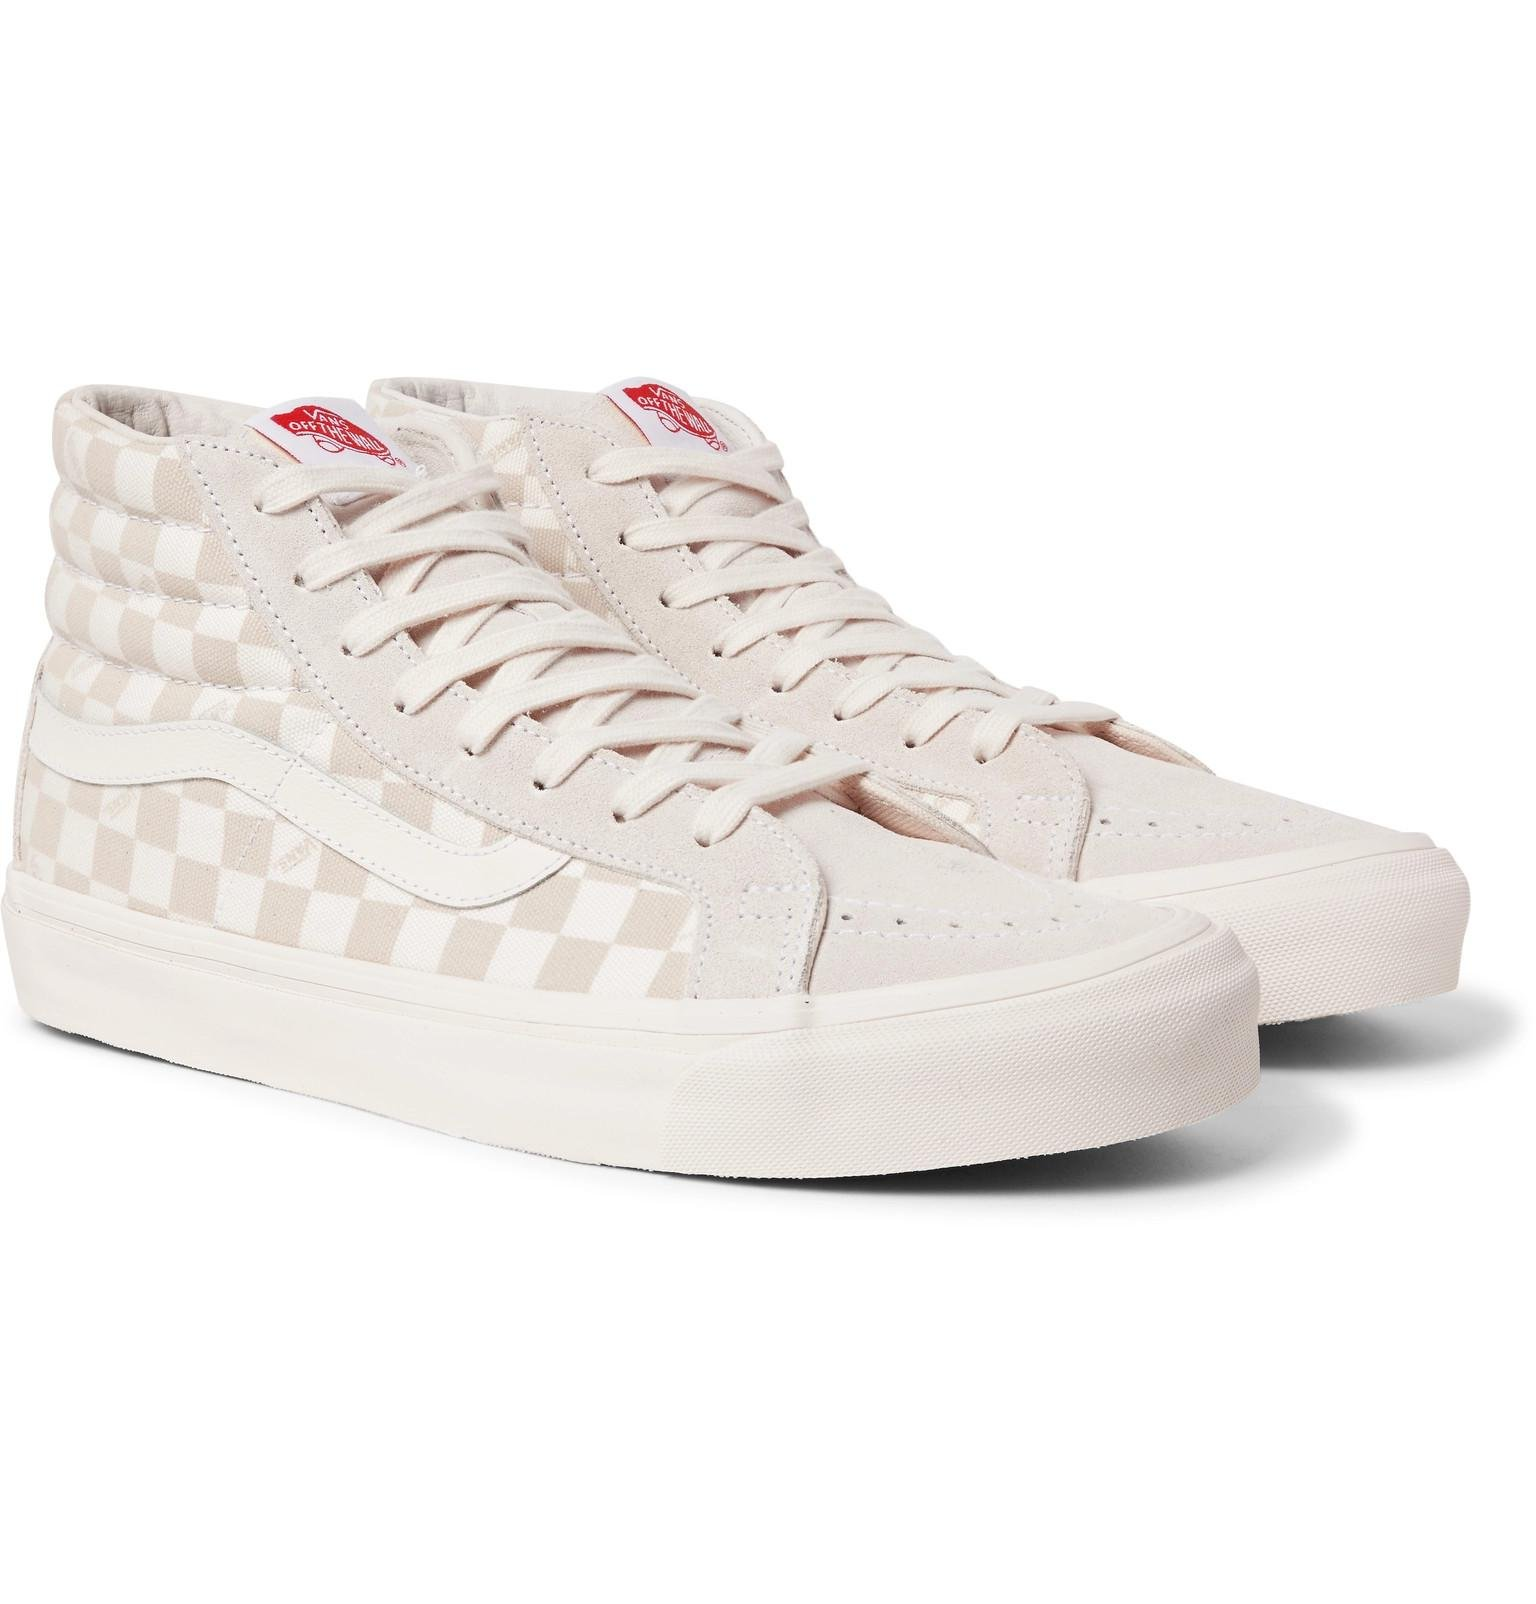 8b2870e0e79cf7 Vans Beige Sk8-hi Lx Checkerboard Leather And Canvas High-top ...